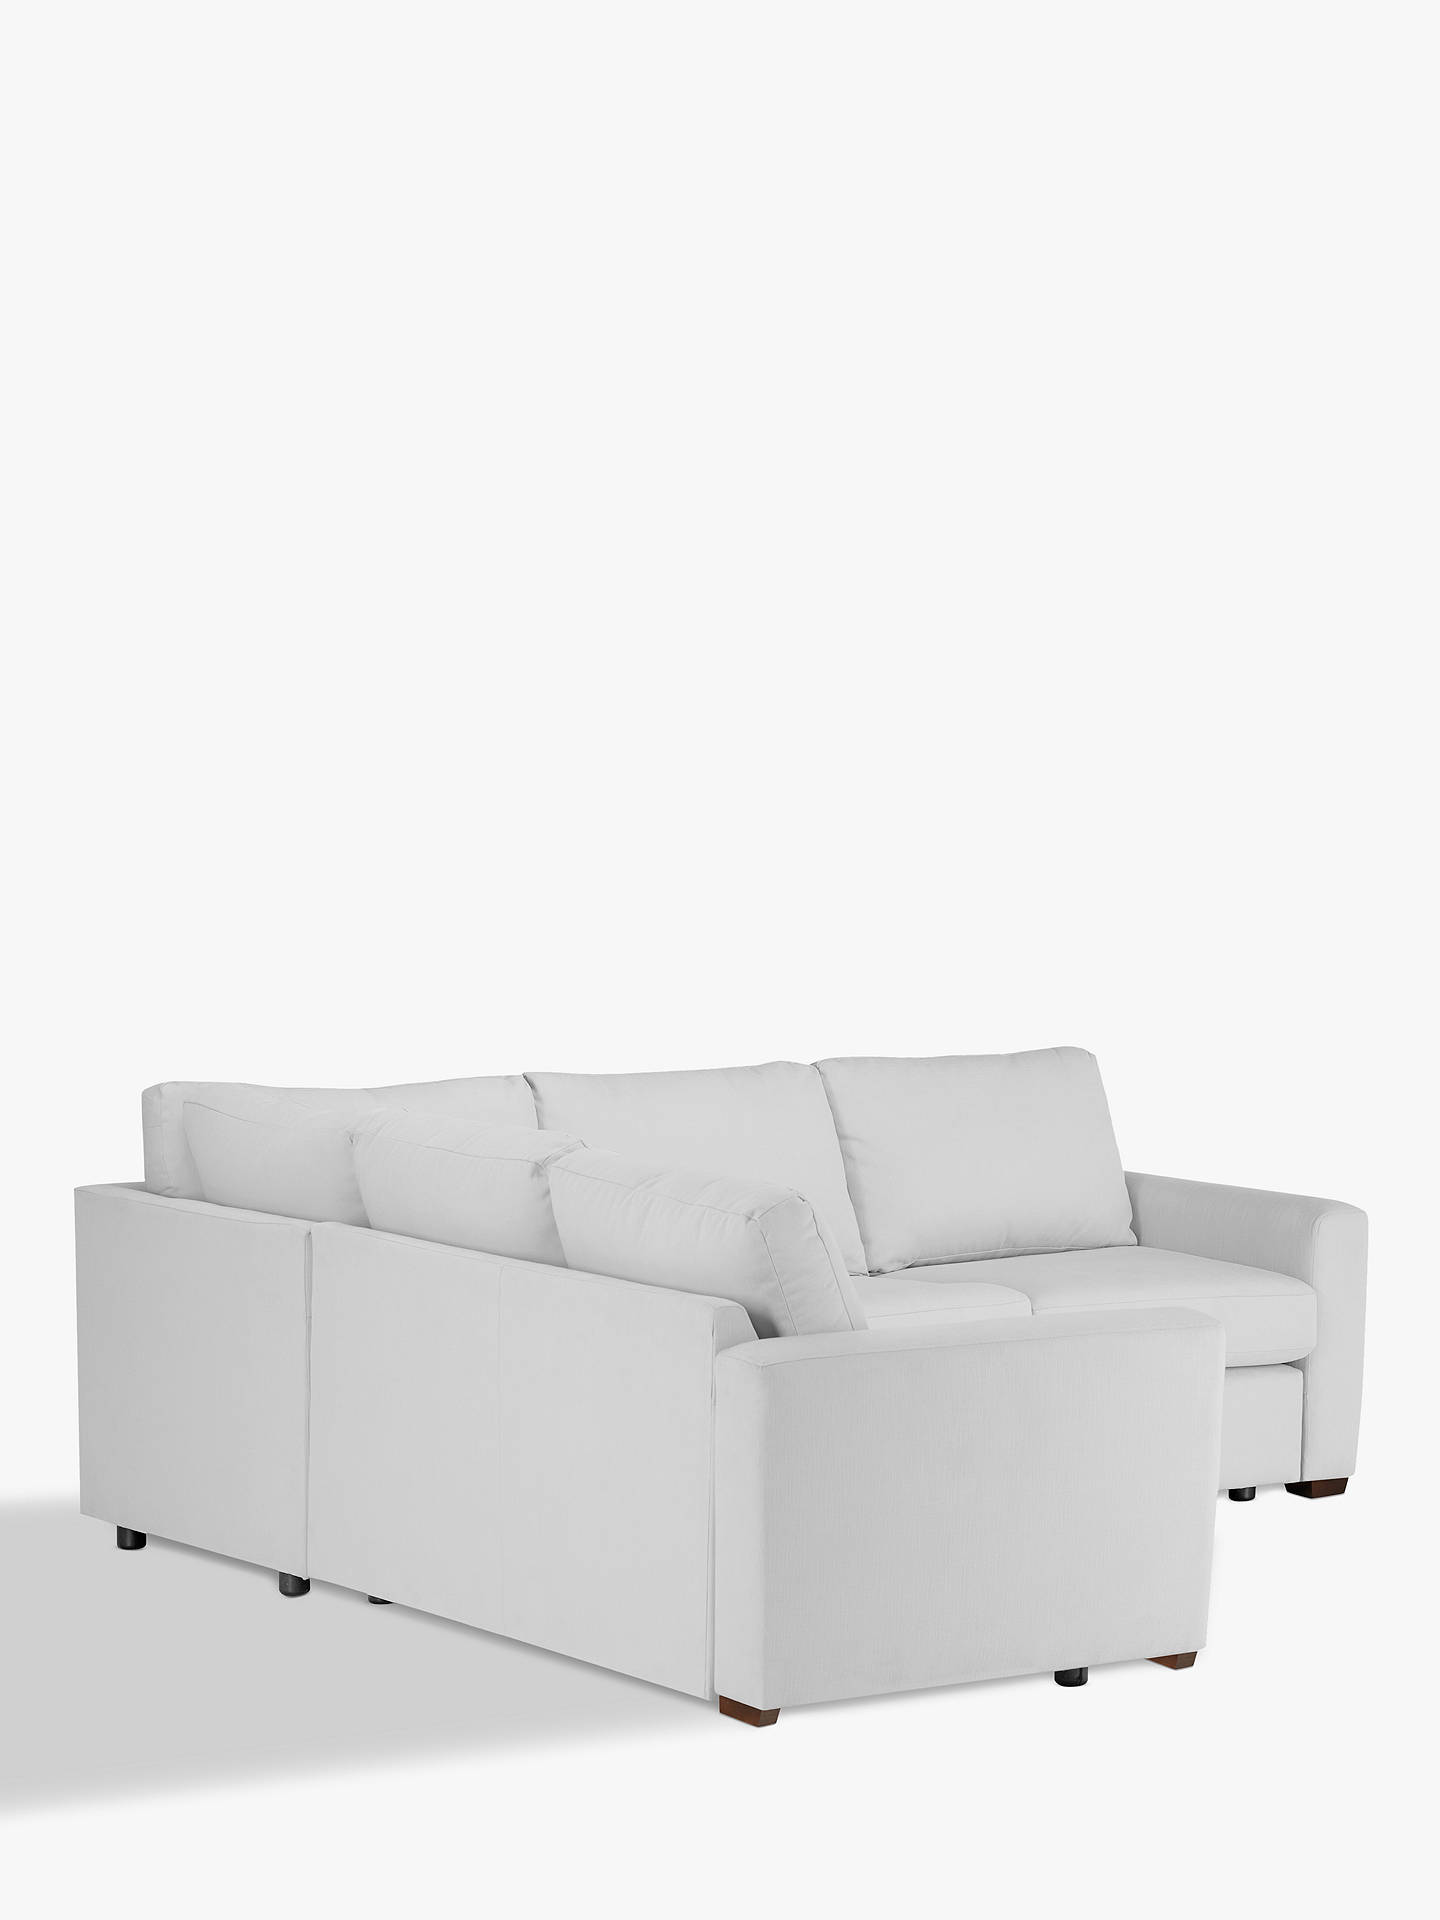 Buy House by John Lewis Oliver Corner Sofa, Light Leg, Aquaclean Matilda Steel Online at johnlewis.com